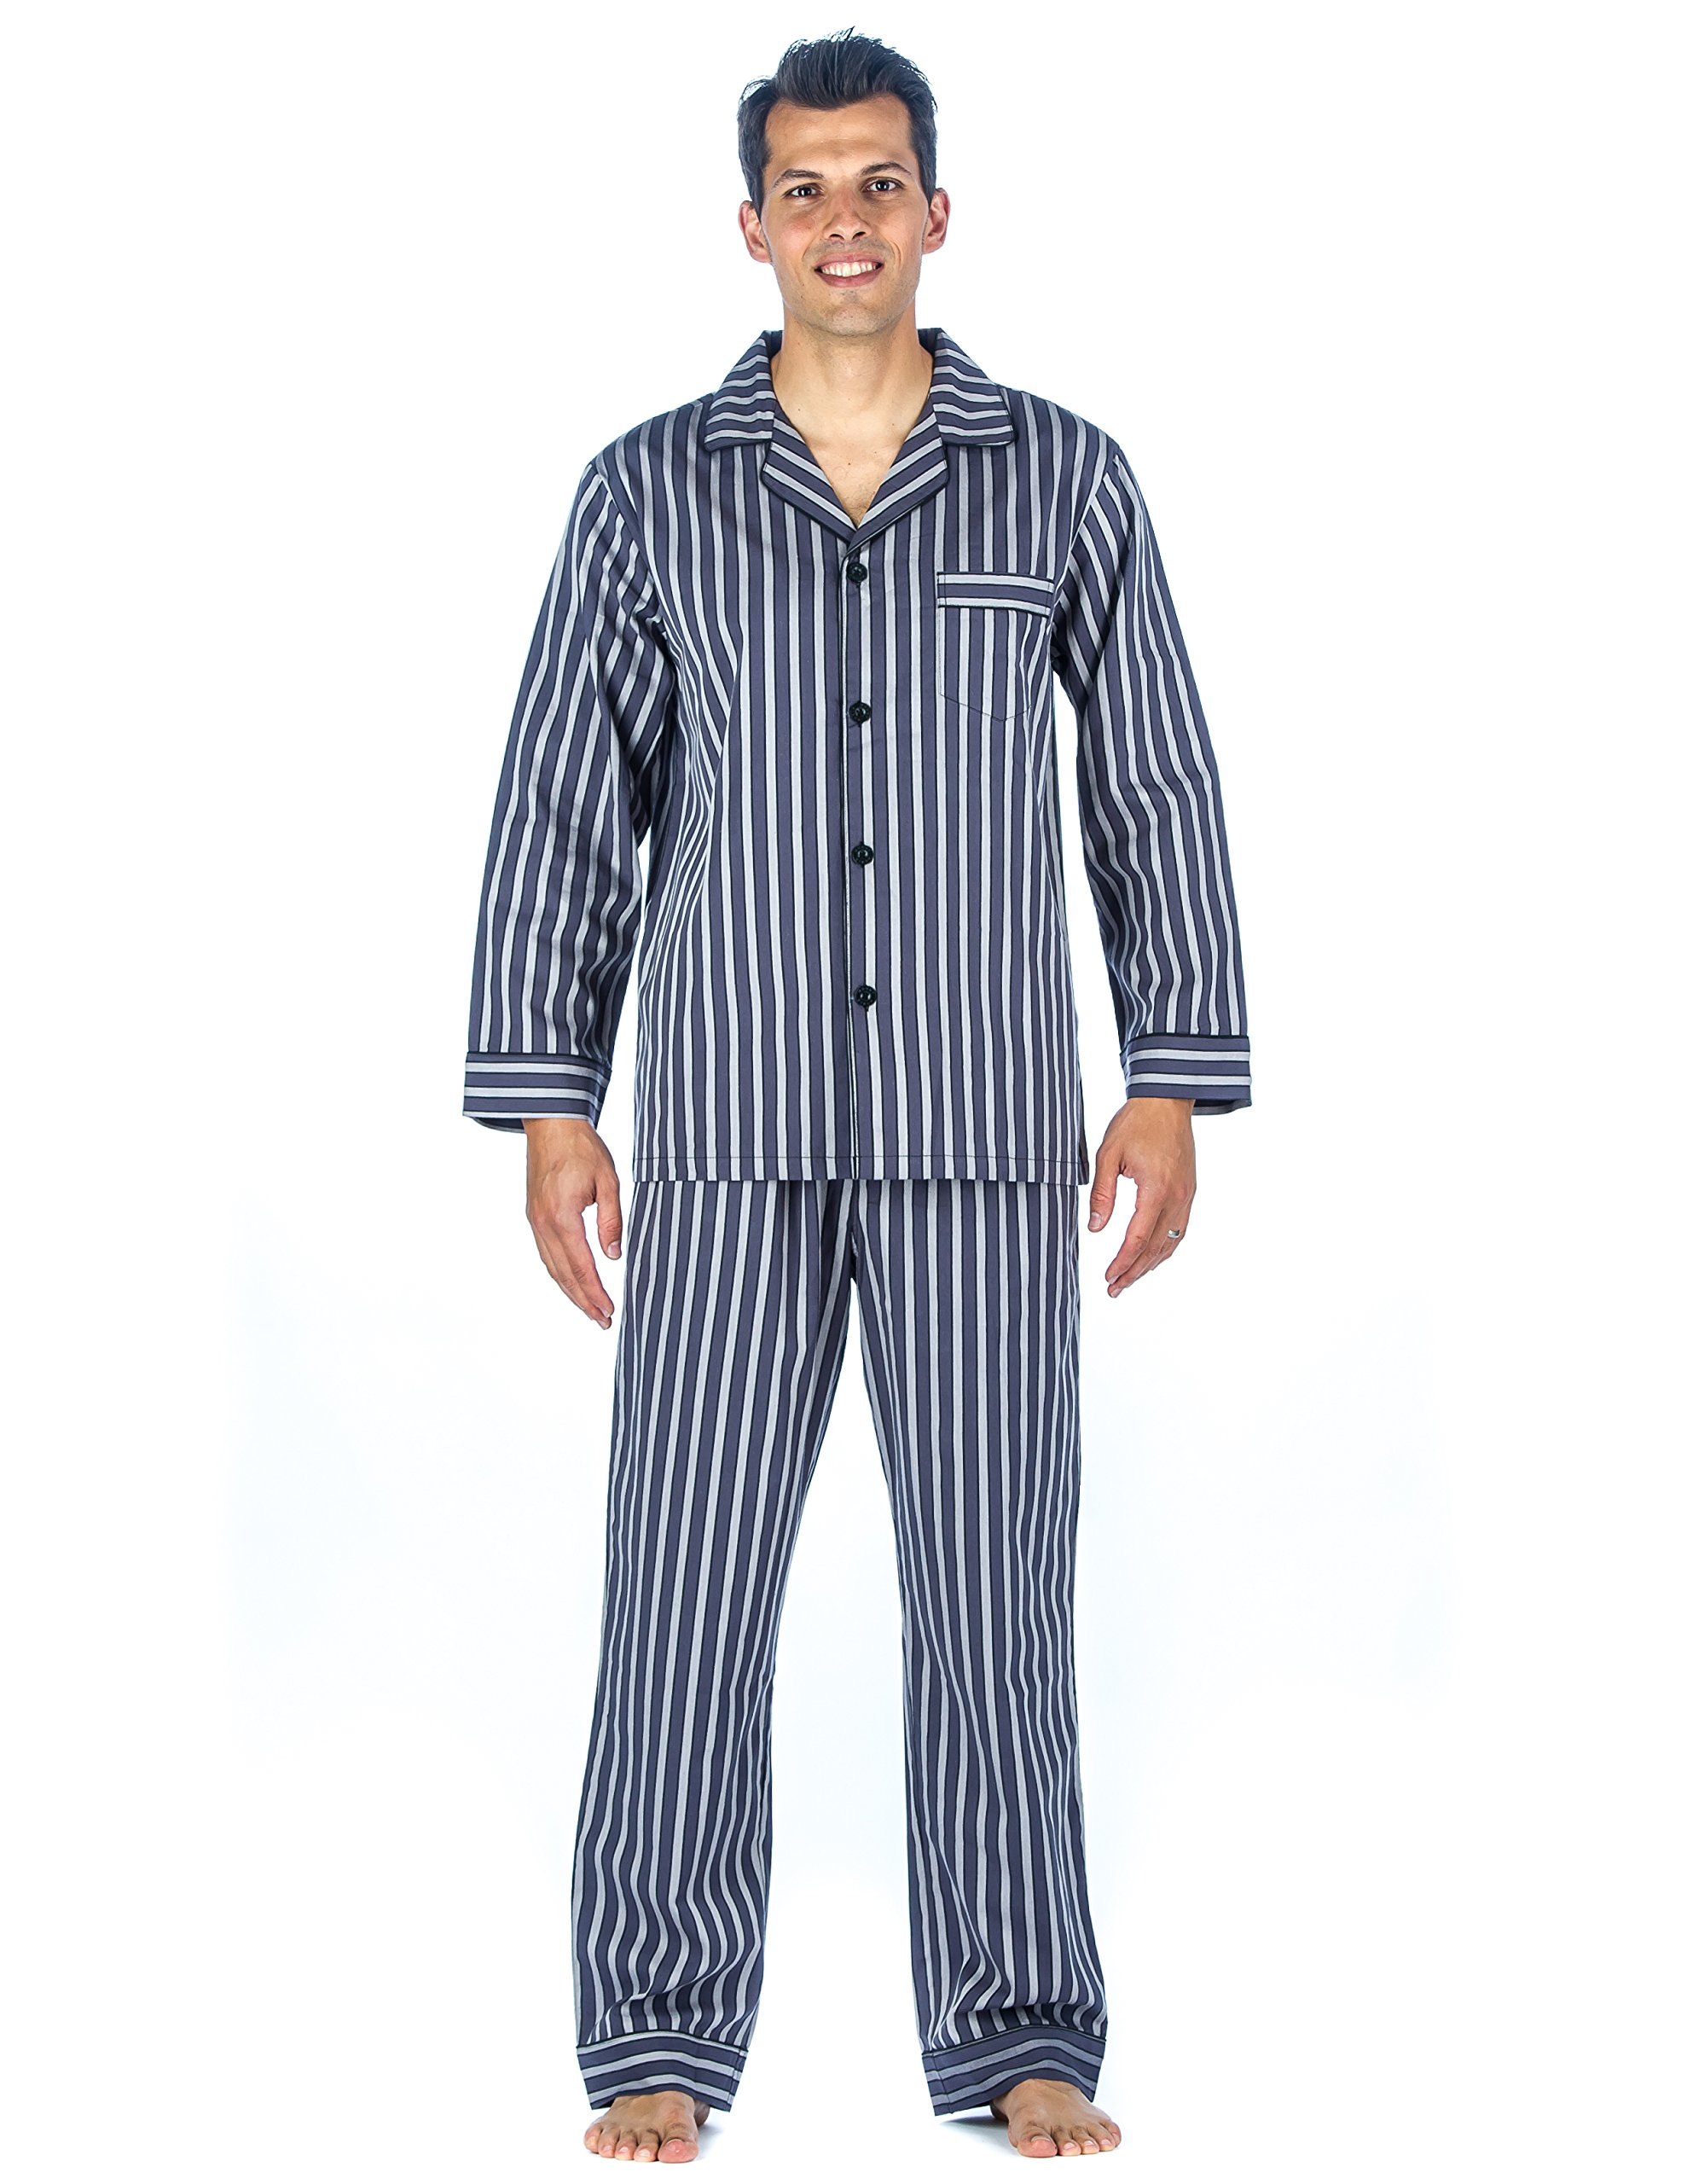 Mens 100% Cotton Woven Pajama Sleepwear Set - Stripes Grey Tone - Large